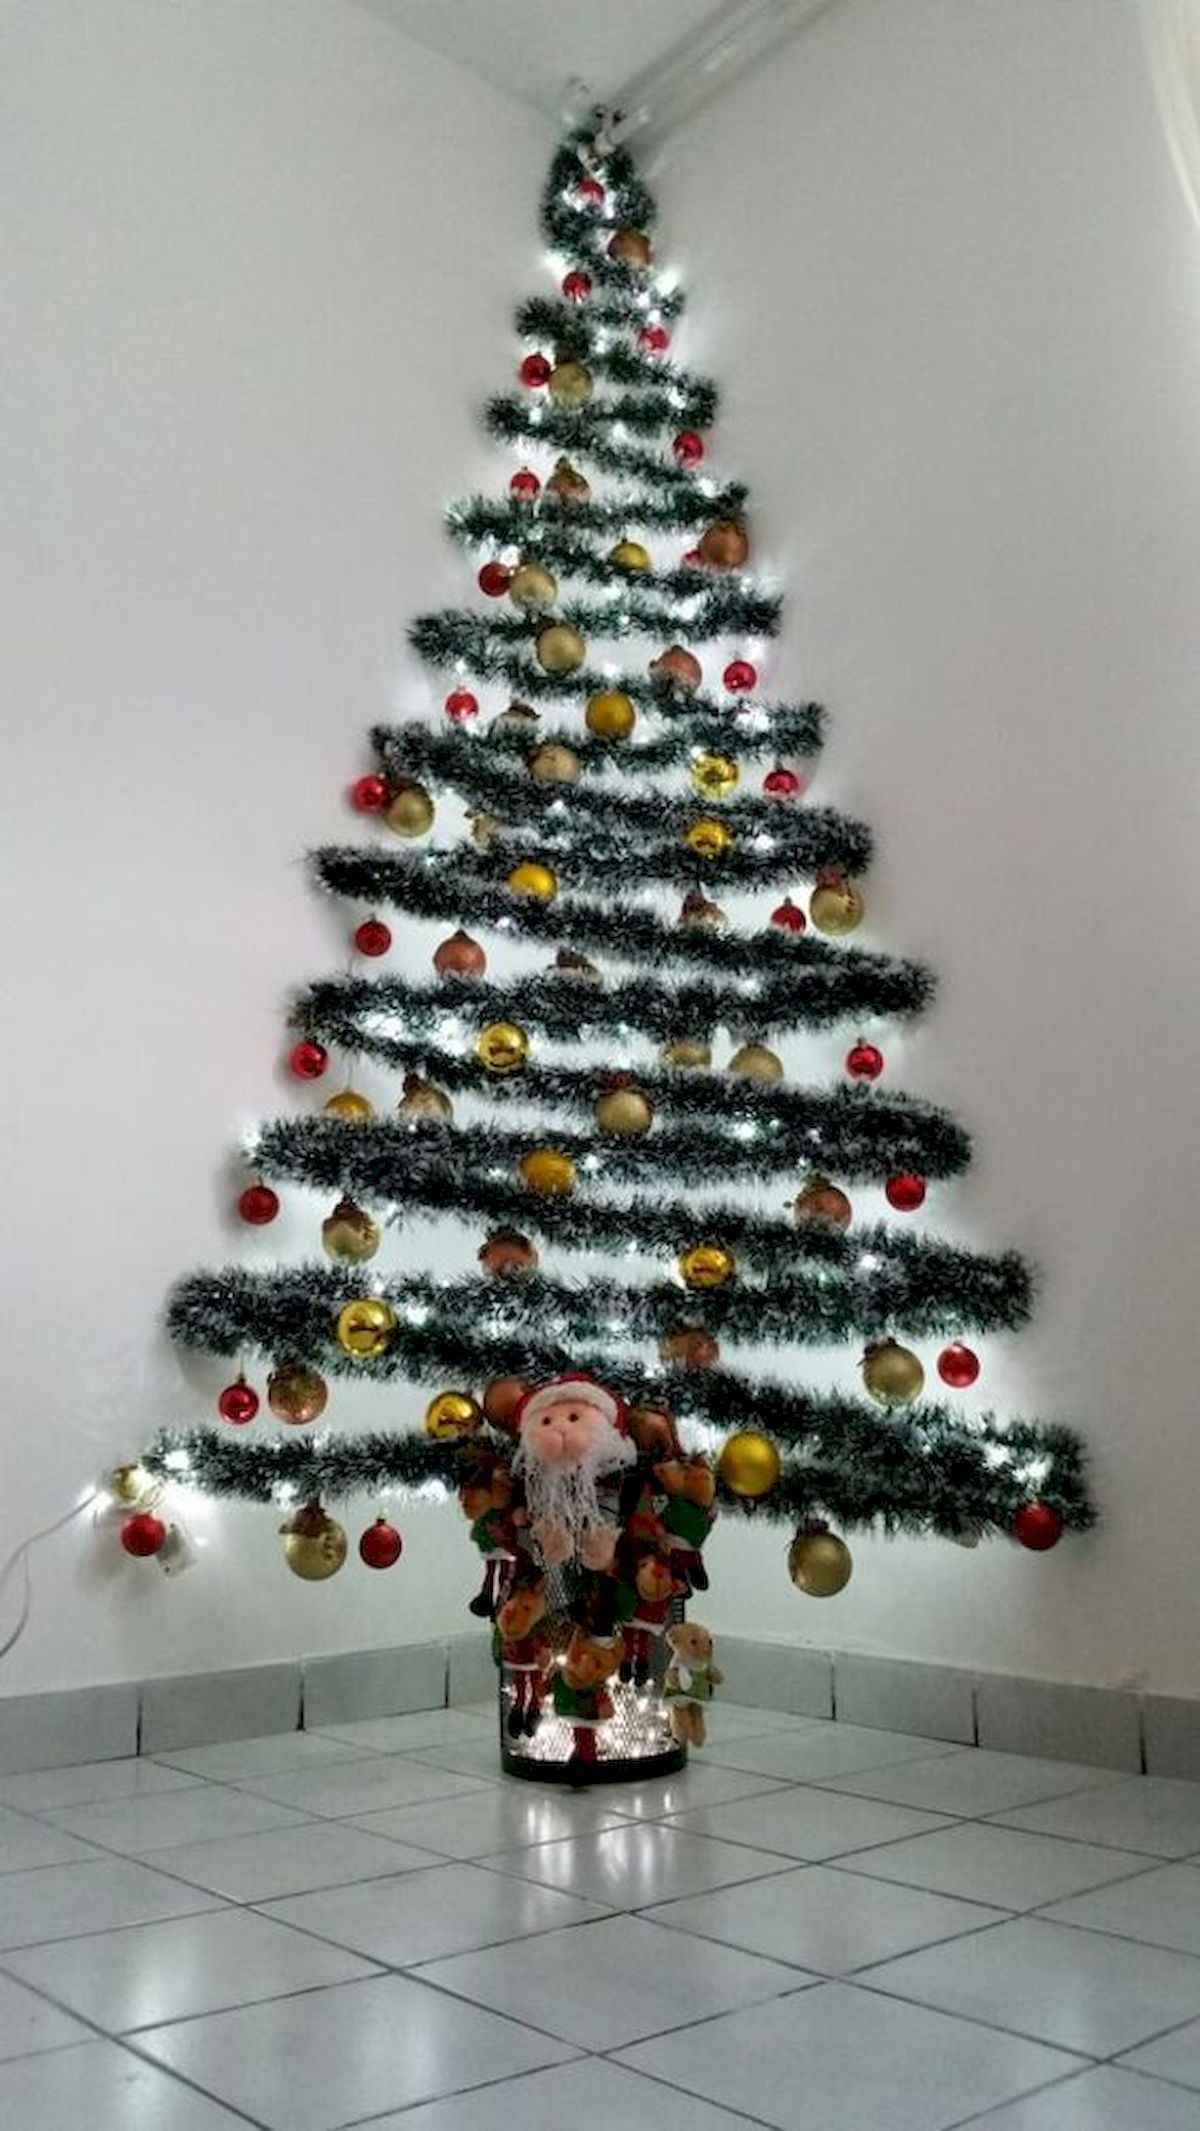 35 awesome apartment christmas decorations ideas 16 published june 10 2018 at 1200 2131 in 35 awesome apartment christmas decorations ideas